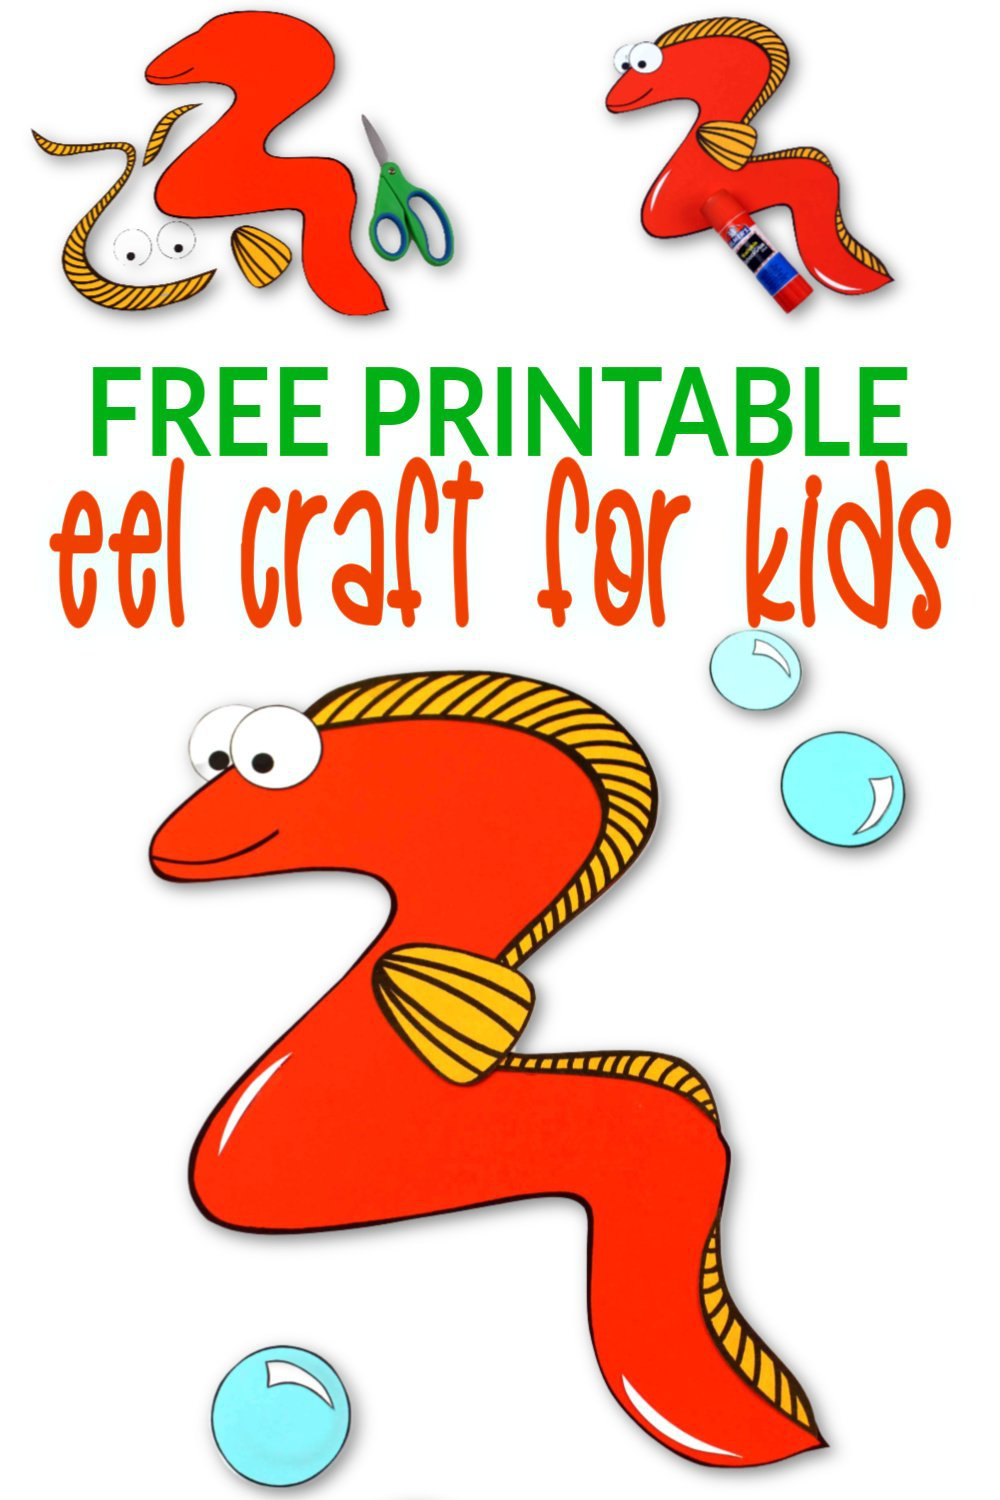 Free Printable Ocean Animal Eel Crafts for kids of all ages, including preschoolers and toddlers